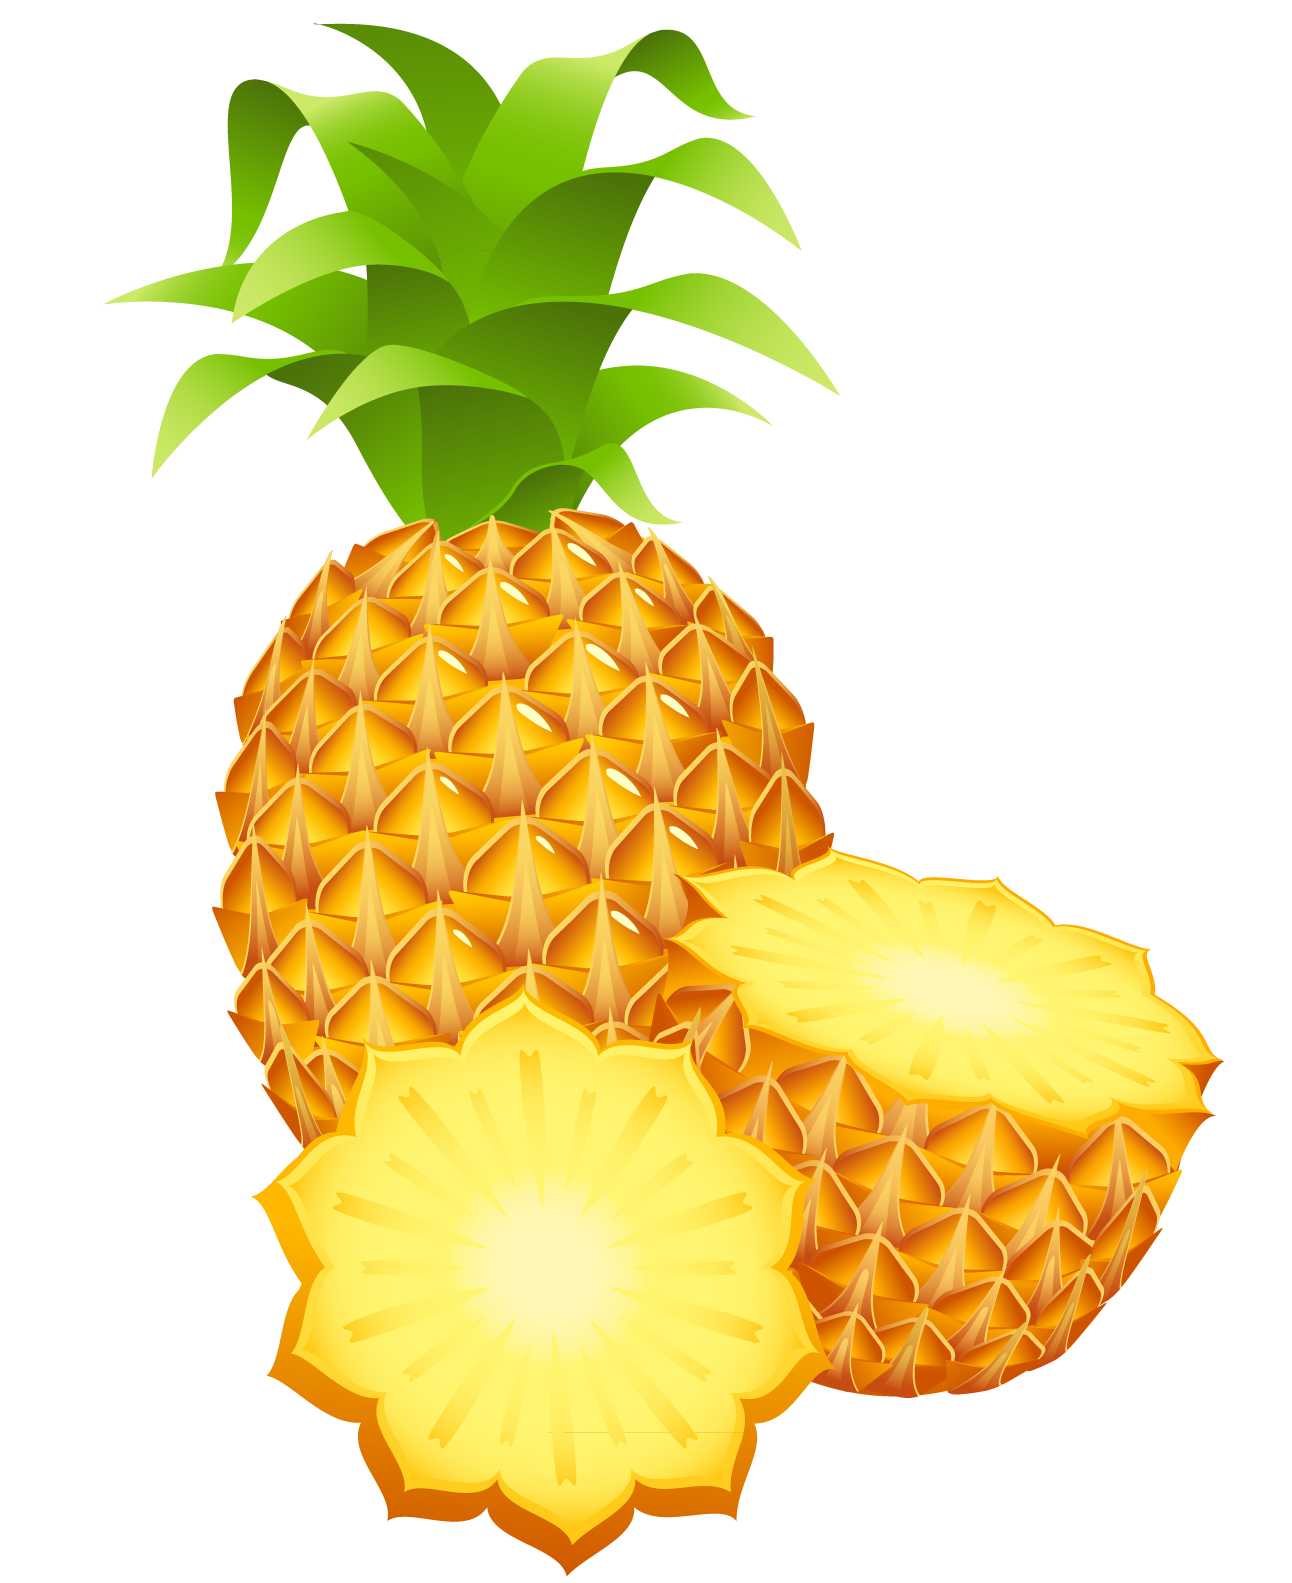 Pineapple PNG images free pictures download.